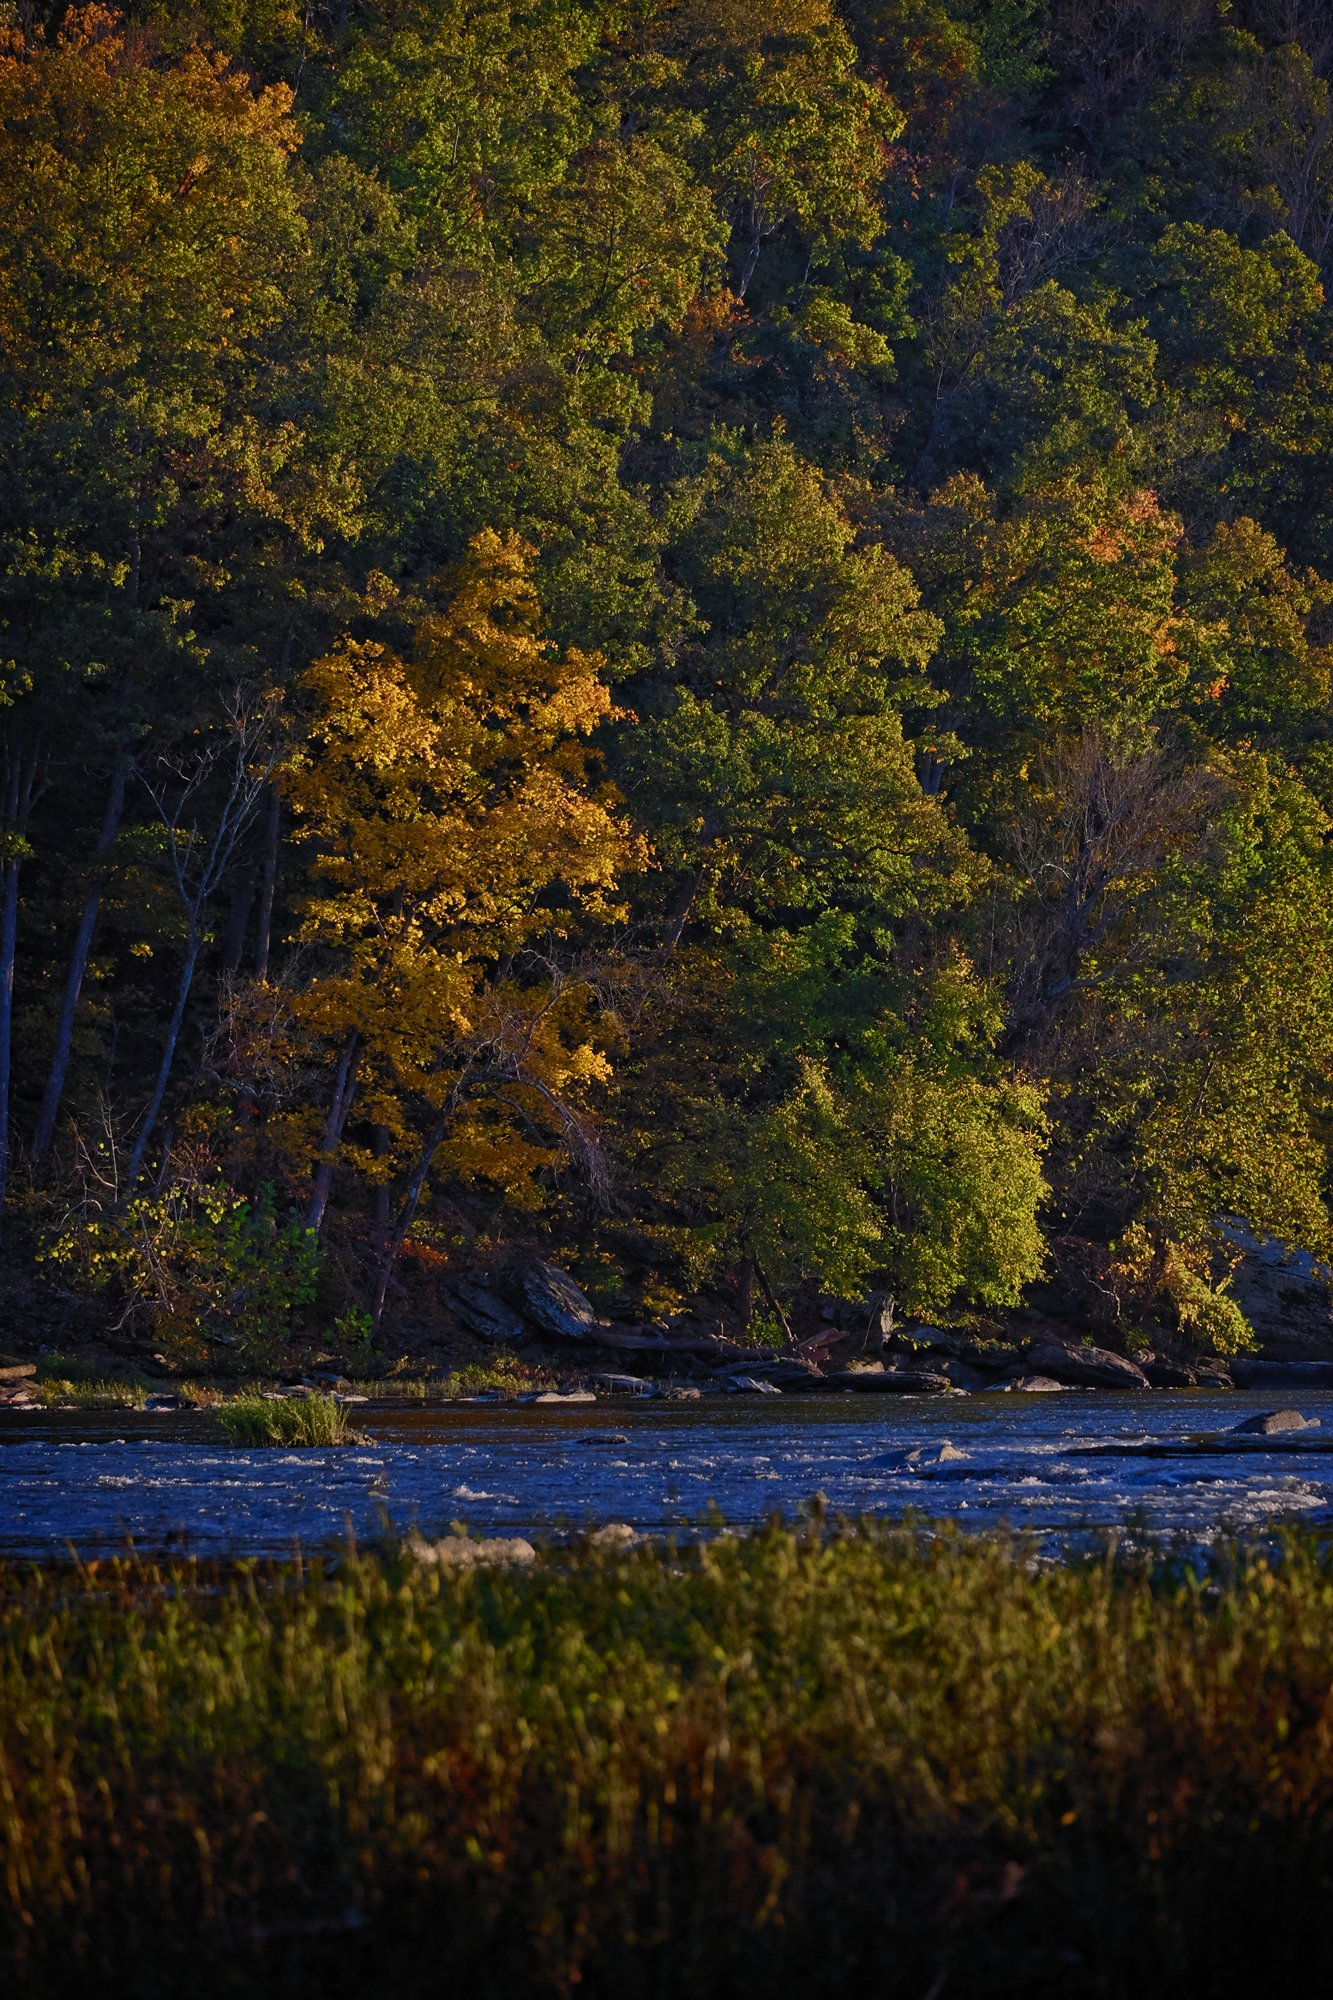 HarpersFerry-161023-2 copy.jpg